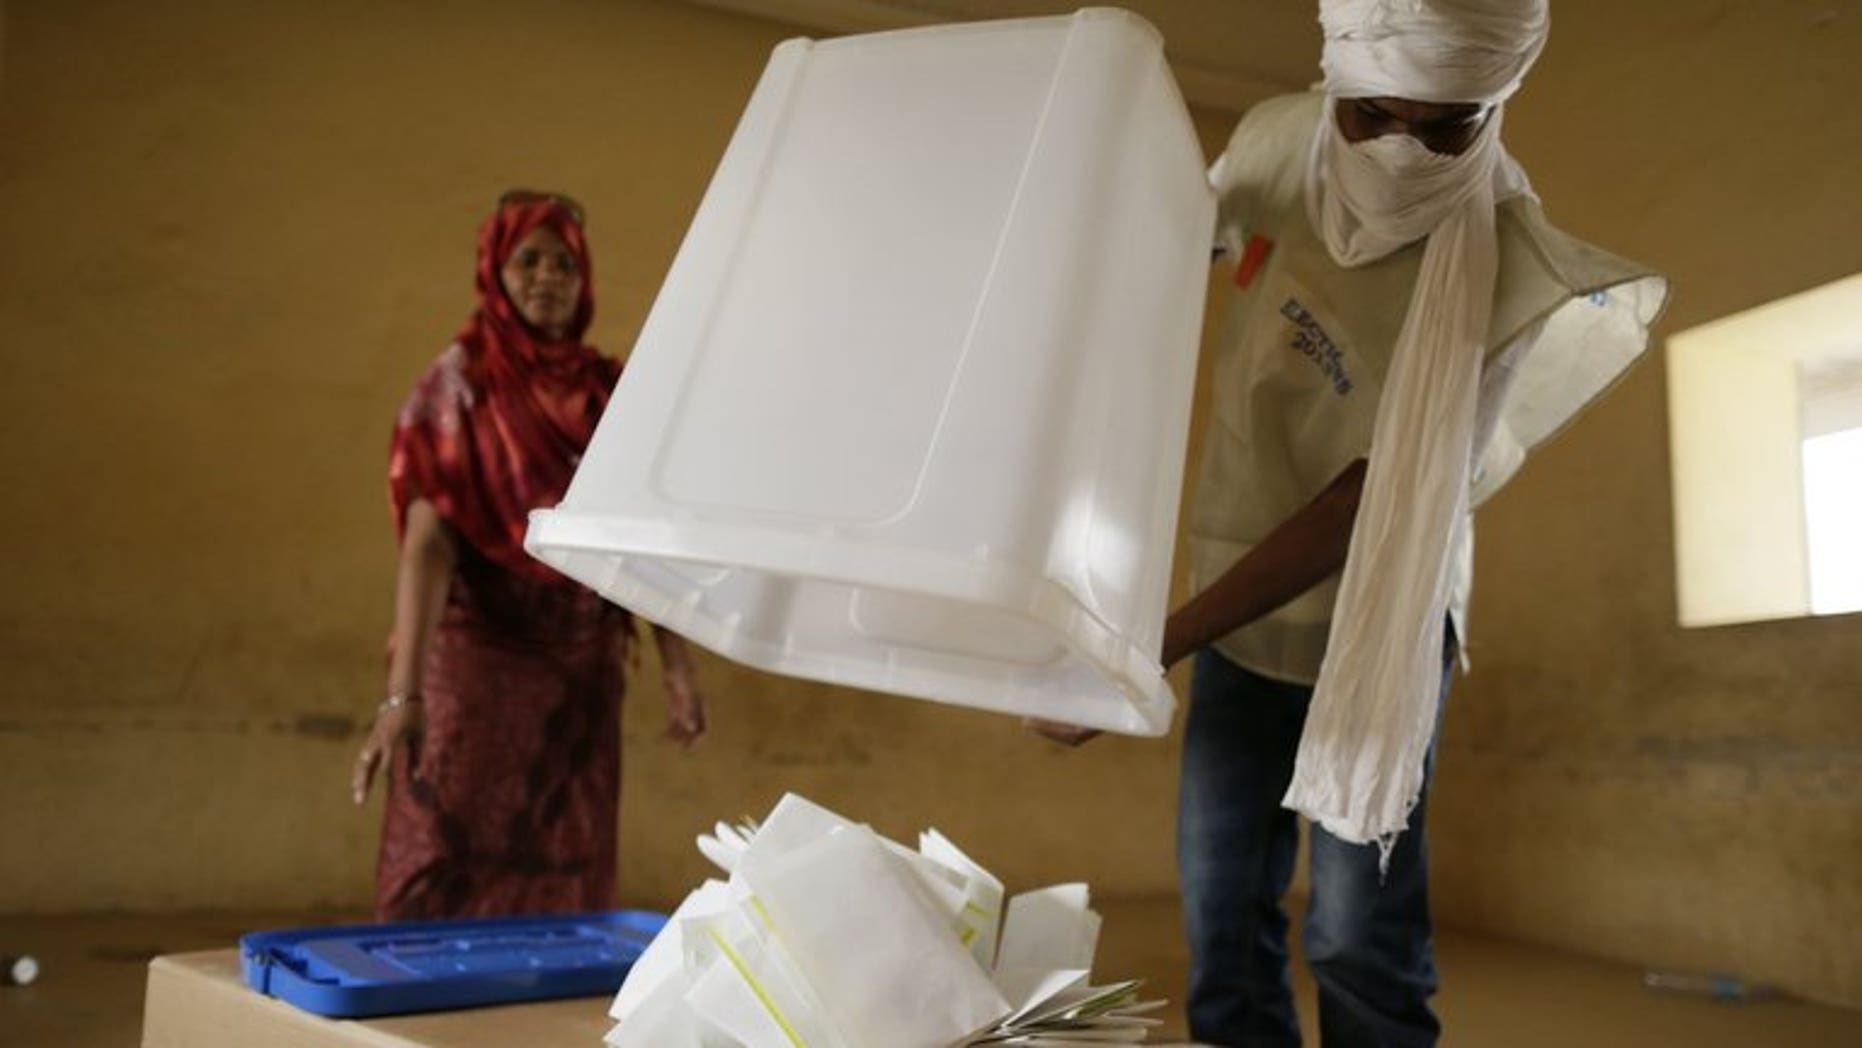 Malian electoral agents count the votes at a polling station in Kidal, northern Mali, on Monday. The results of the first round of Mali's presidential election will be announced on Friday, a day later than expected, the presidency said Thursday.